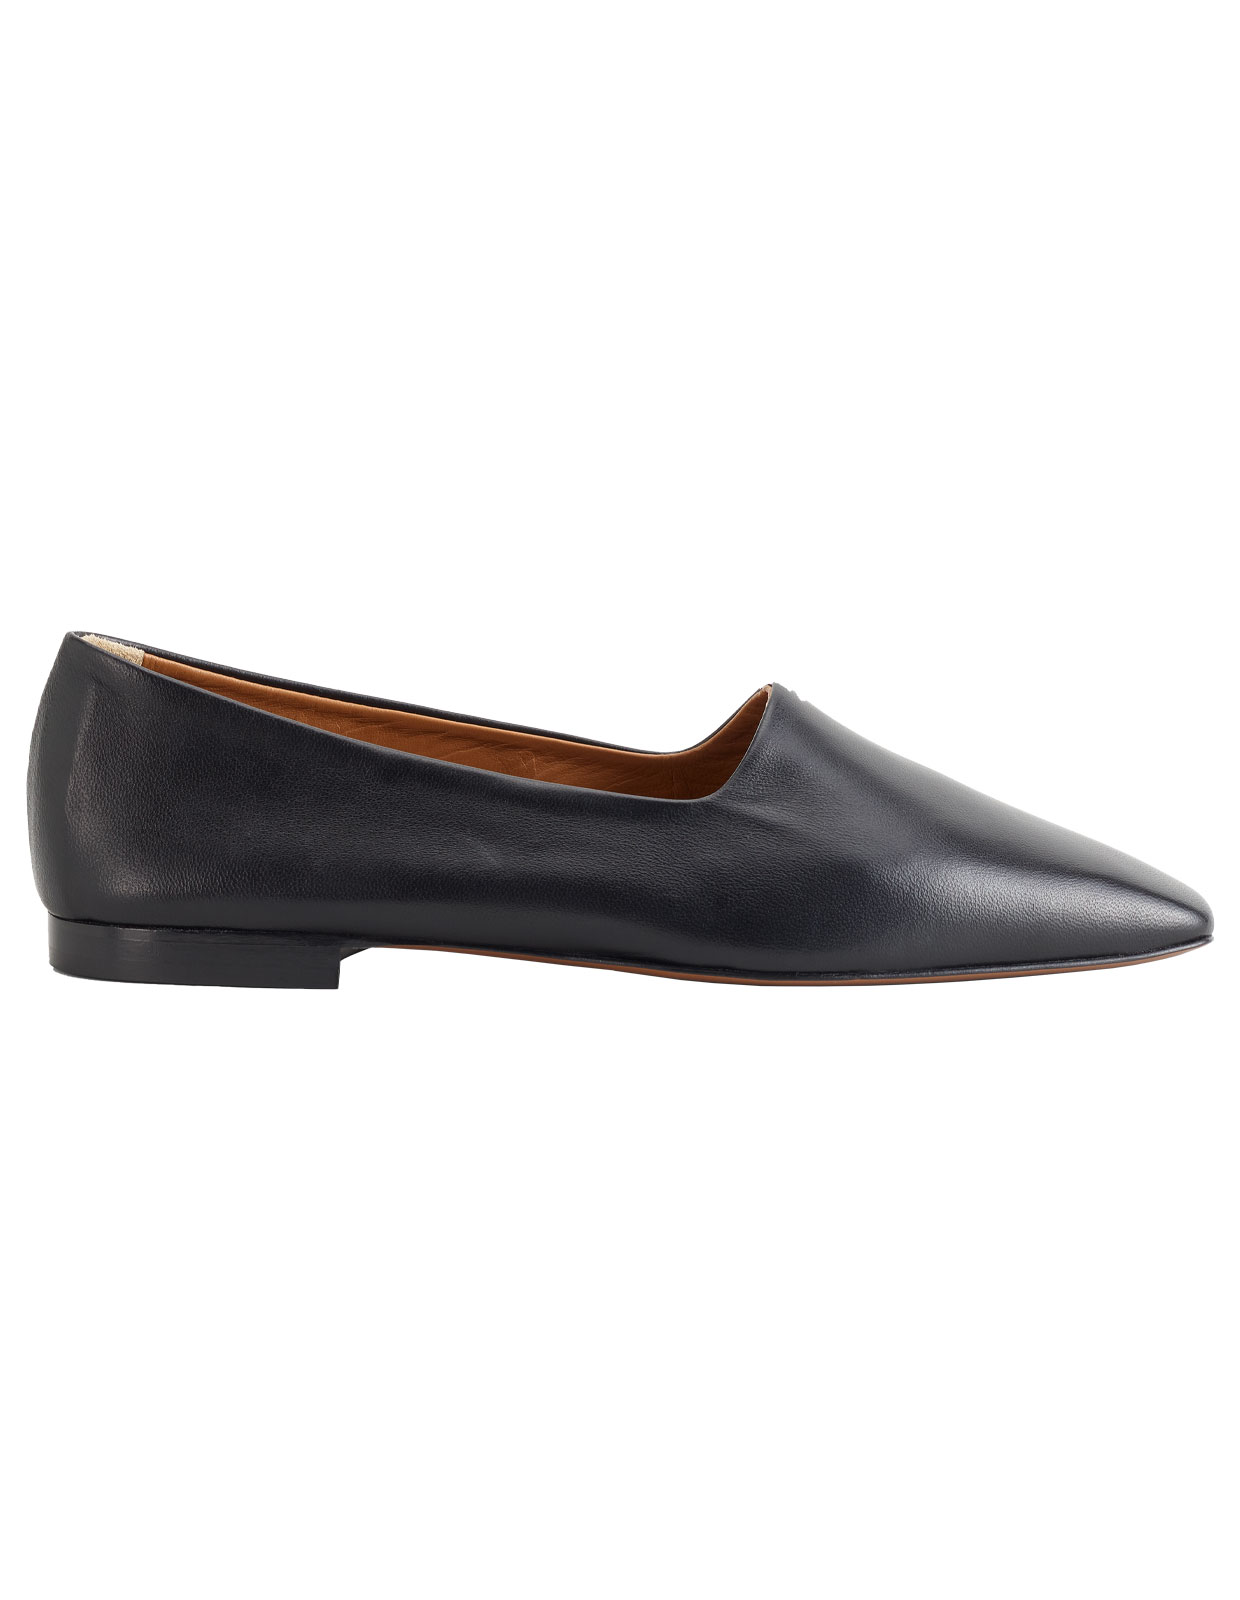 Andrano loafers Black Nappa